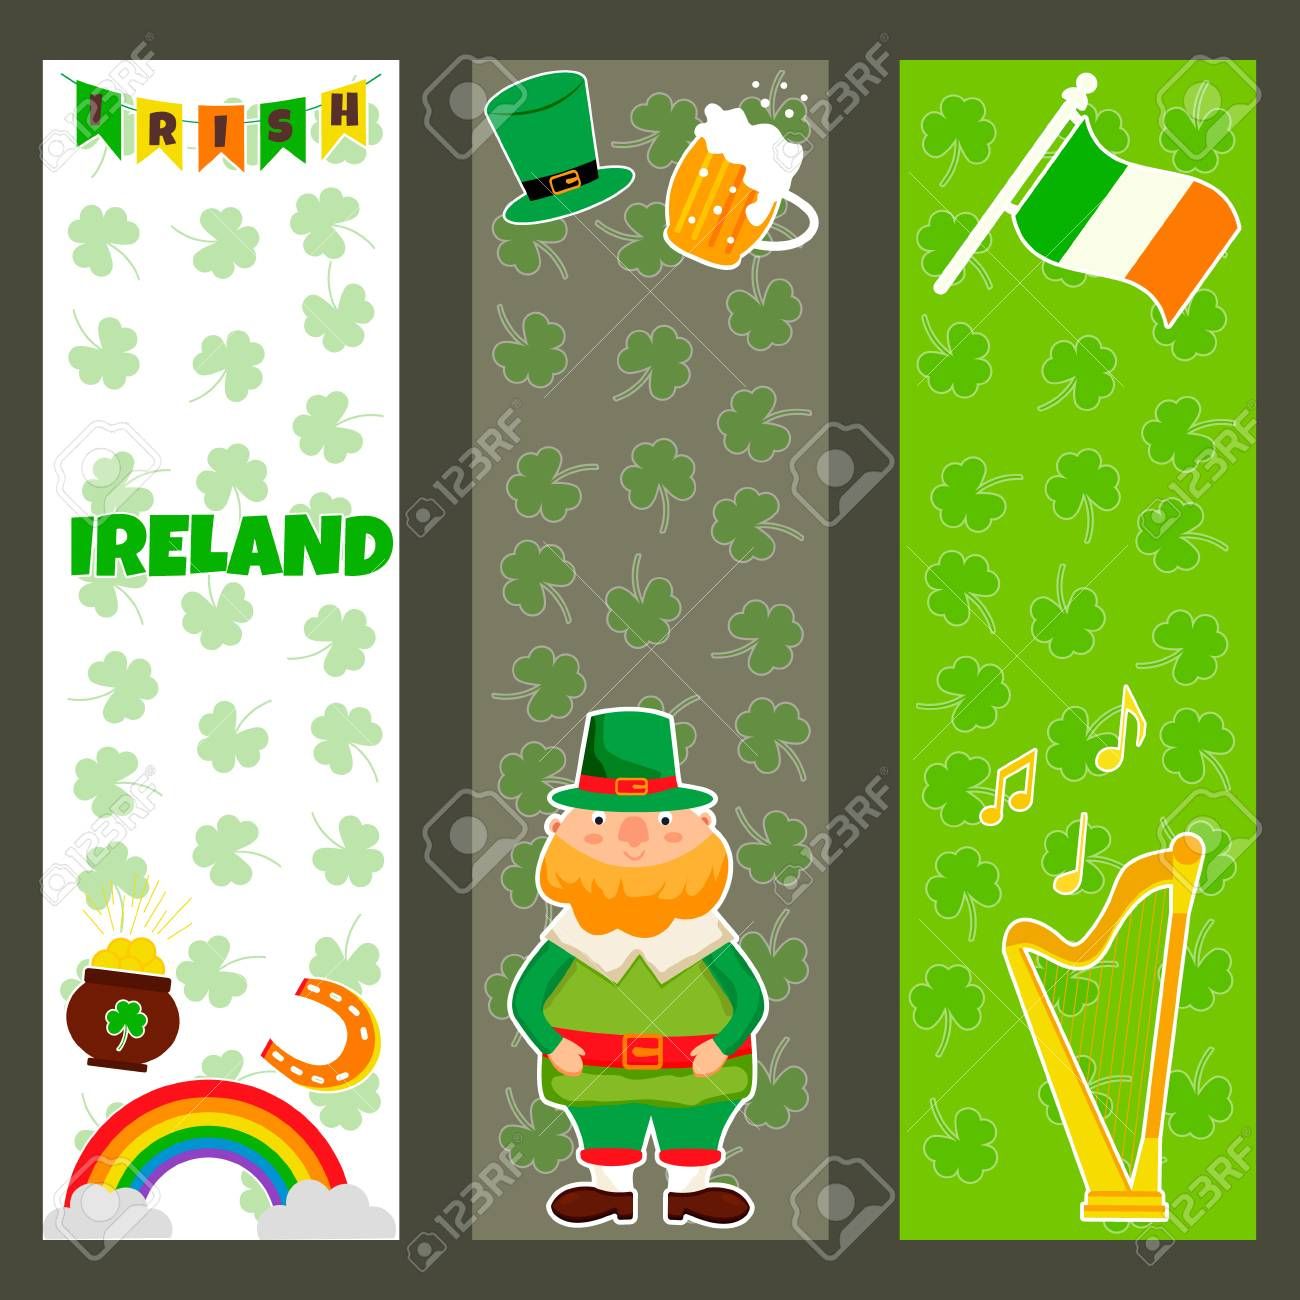 Three Irish banners with traditional symbols, characters and